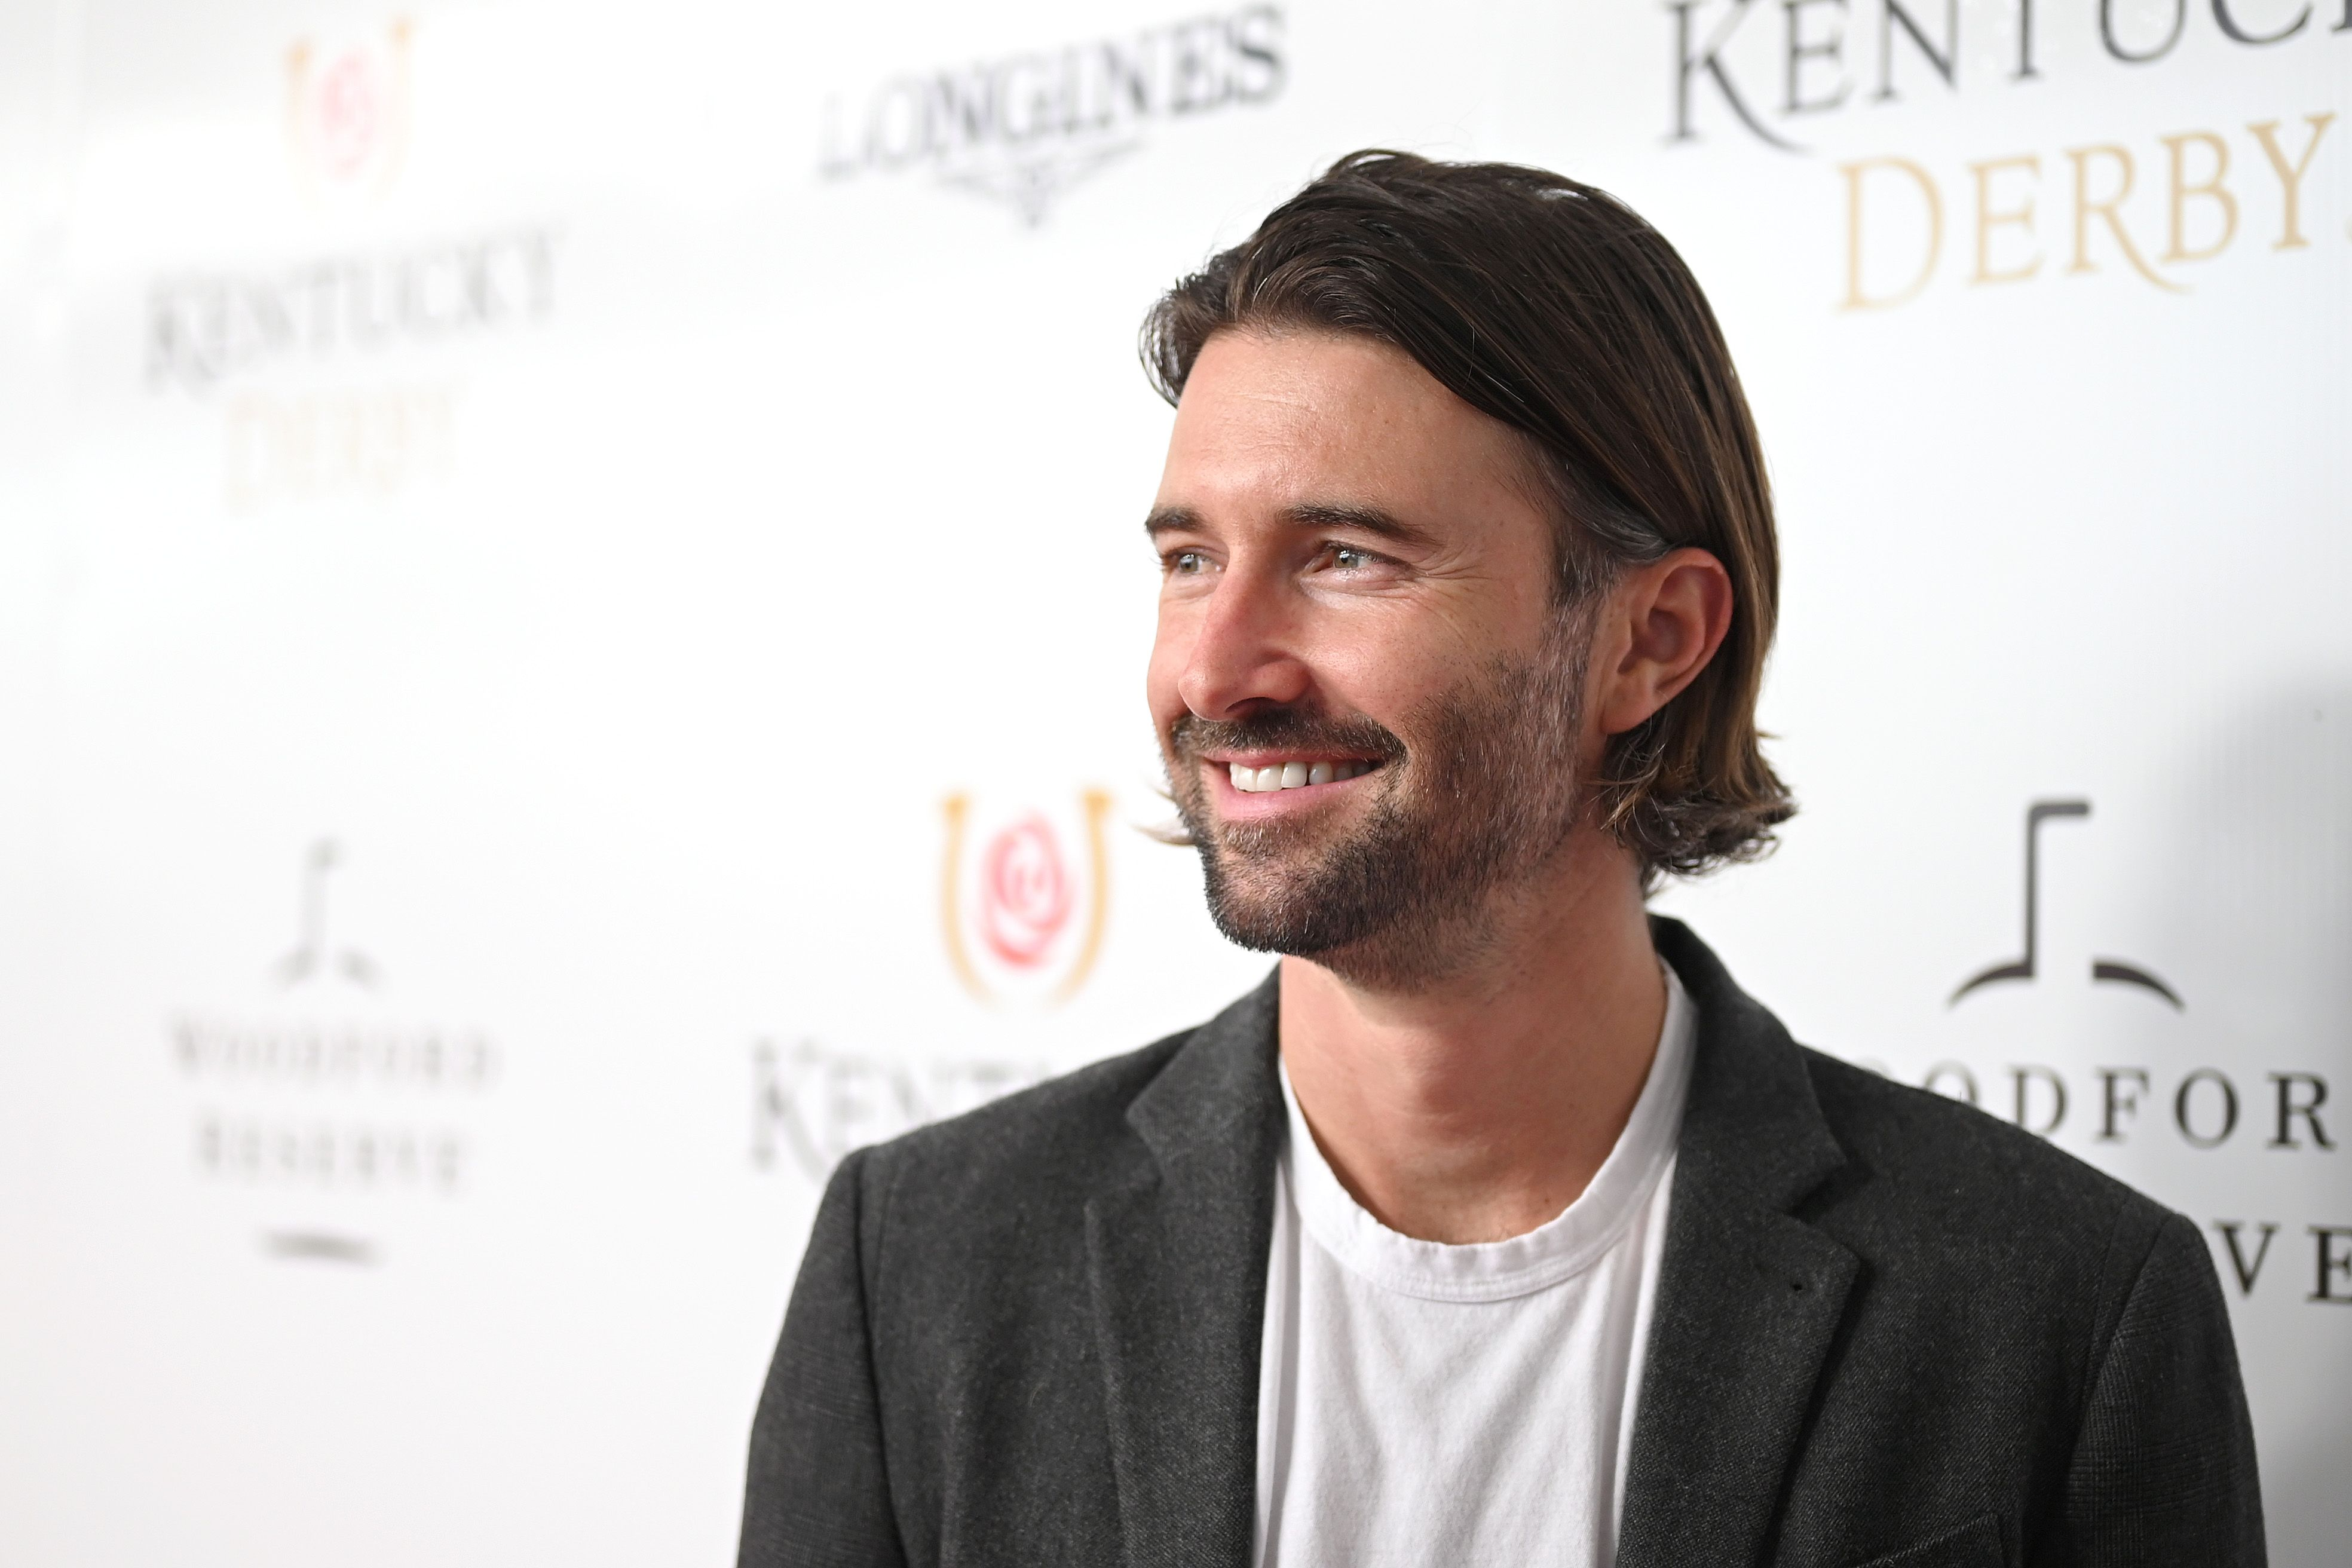 A photo of Brandon Jenner sporting a grey suit and white inner round-neck at an event, and the smile on his face is gorgeous.